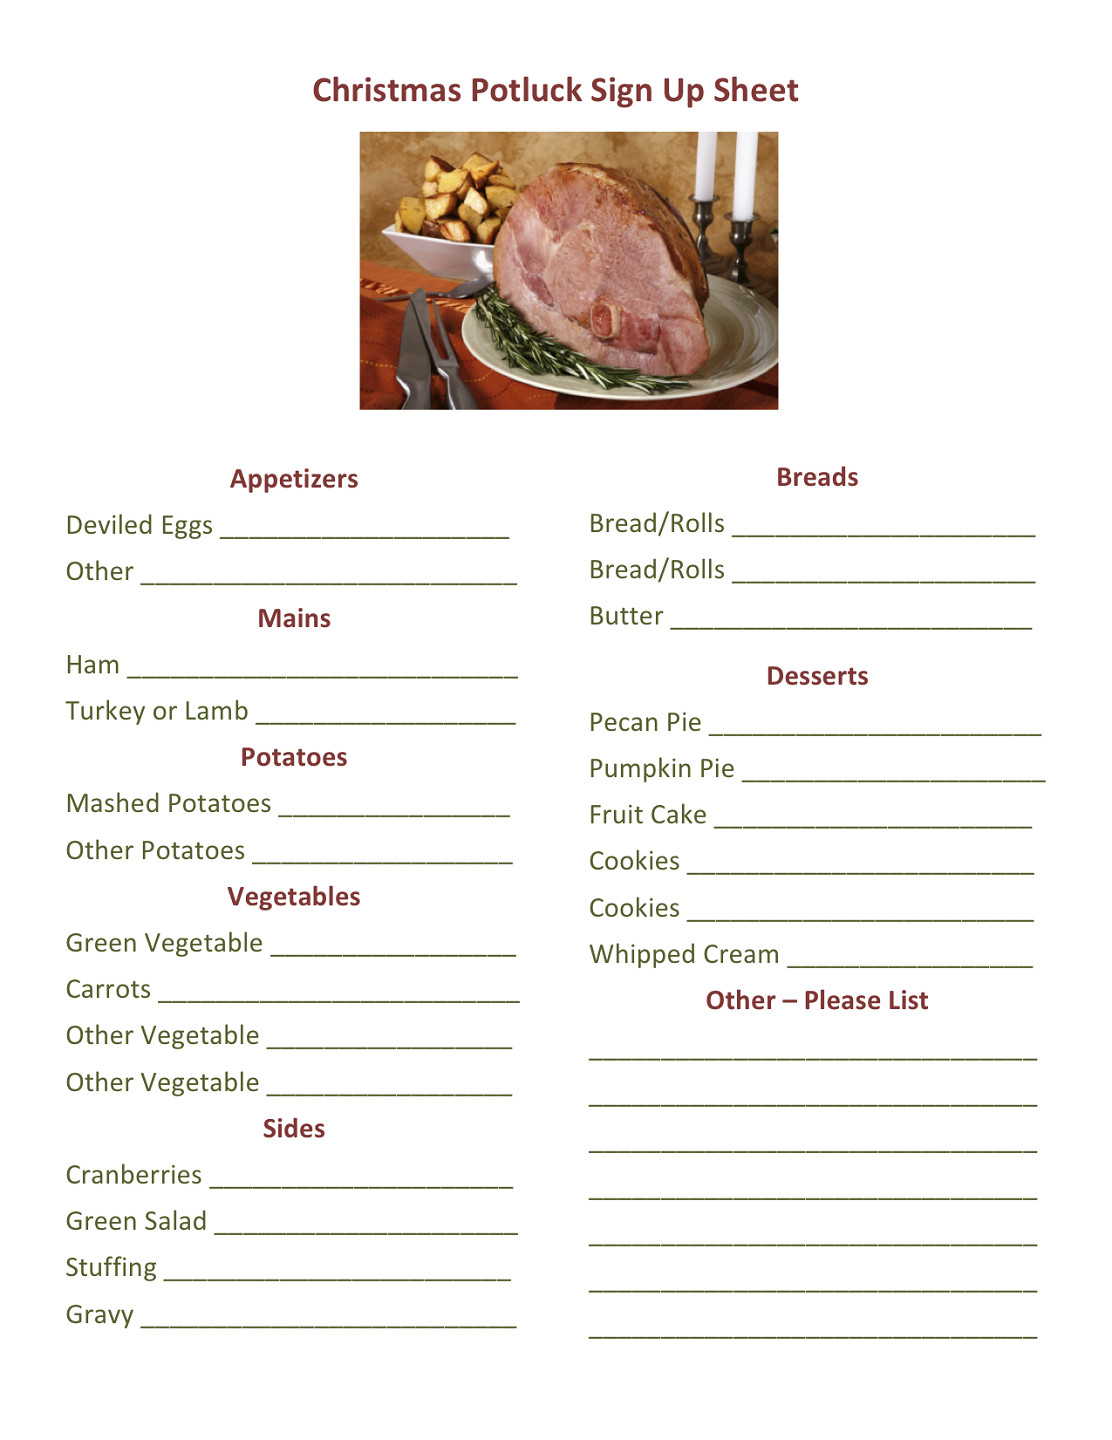 Christmas Potluck Signup Sheet Template Potluck Dinner Sign Up Sheet Printable